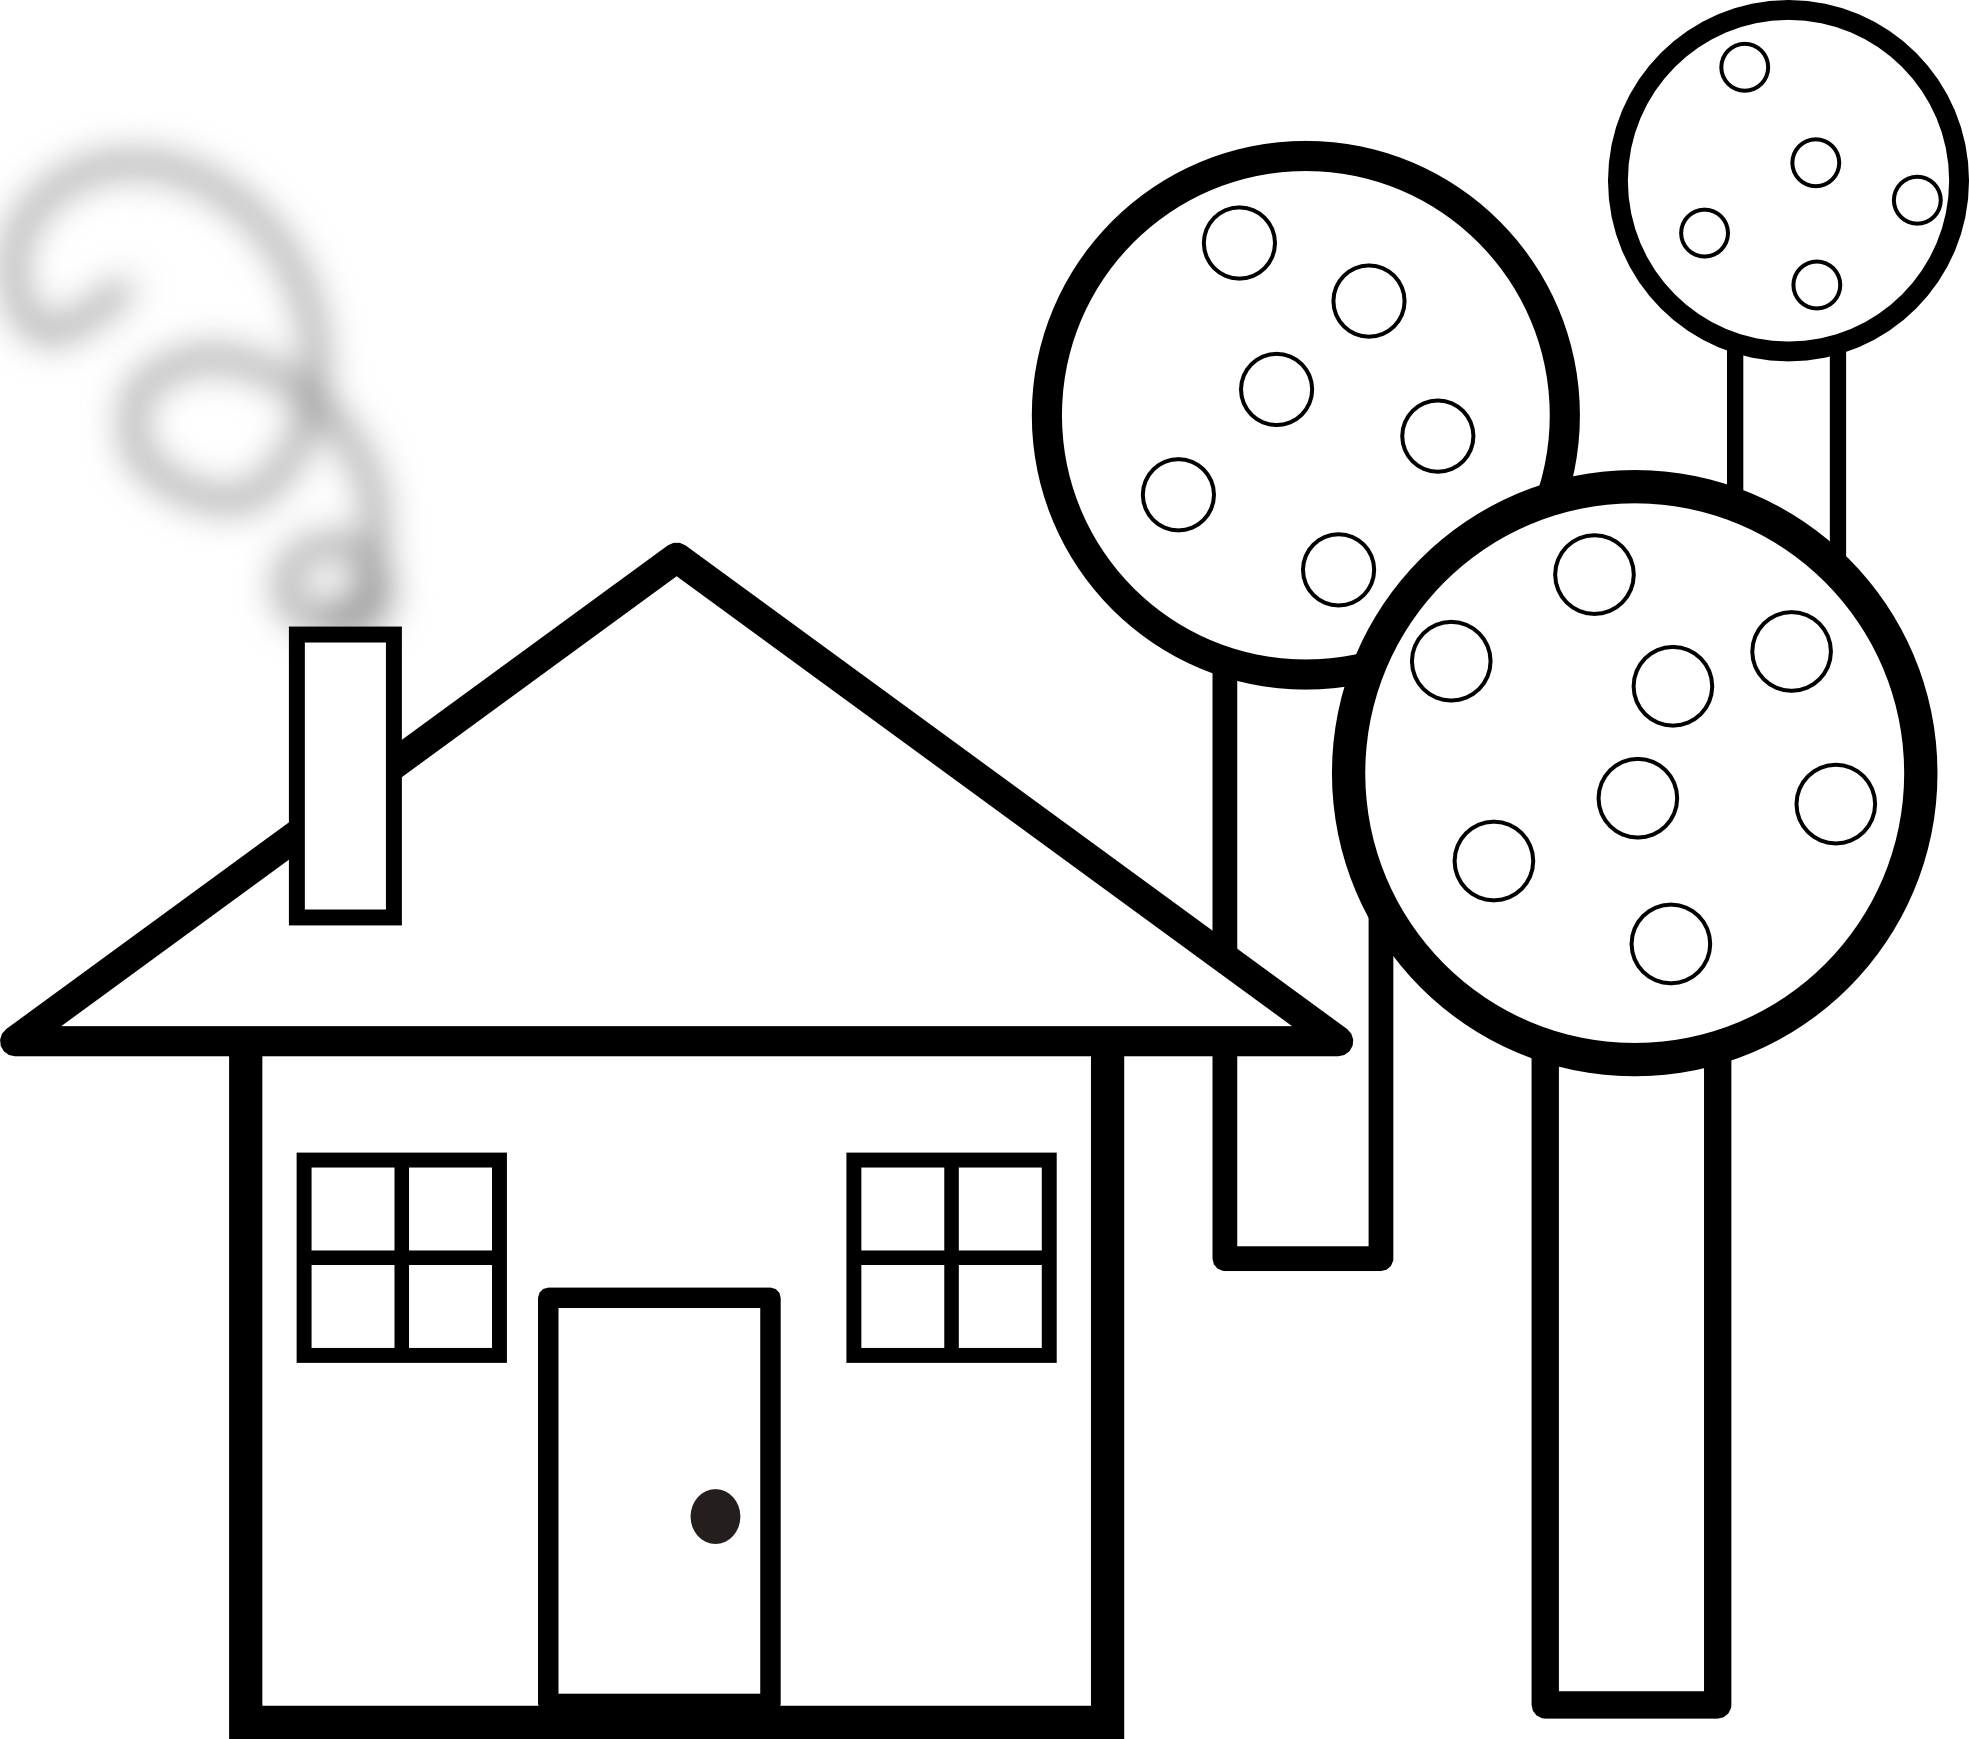 Adobe house clipart black and white download Haunted House Coloring Page | Clipart Panda - Free Clipart Images download